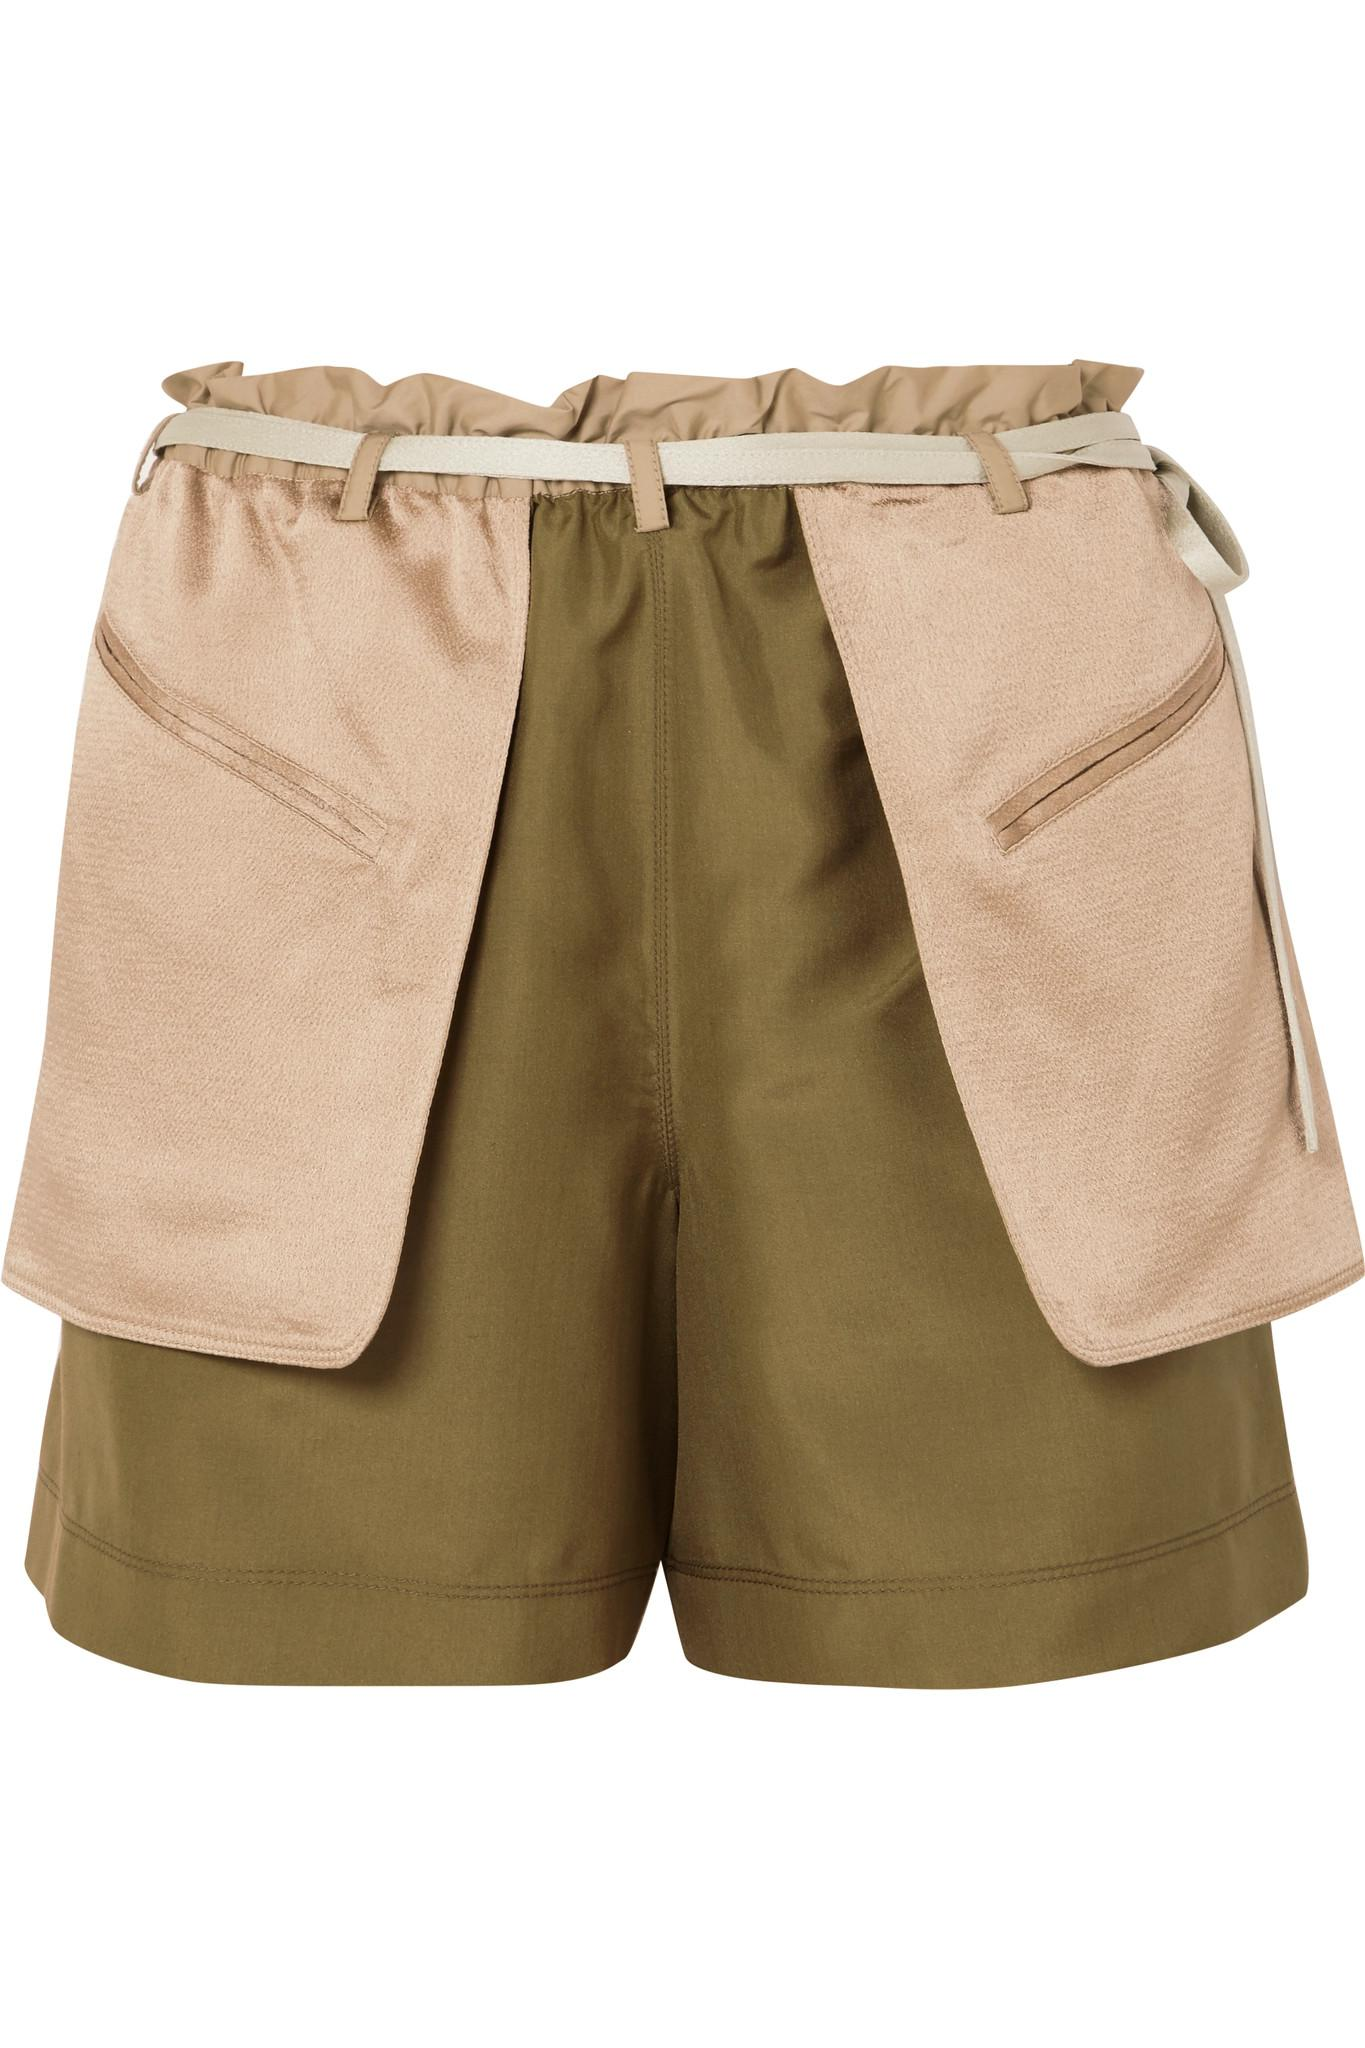 Comfortable Online Shopping Crêpe and satin shorts Valentino For Sale Finishline Purchase Your Favorite Outlet Visit New bqQlw